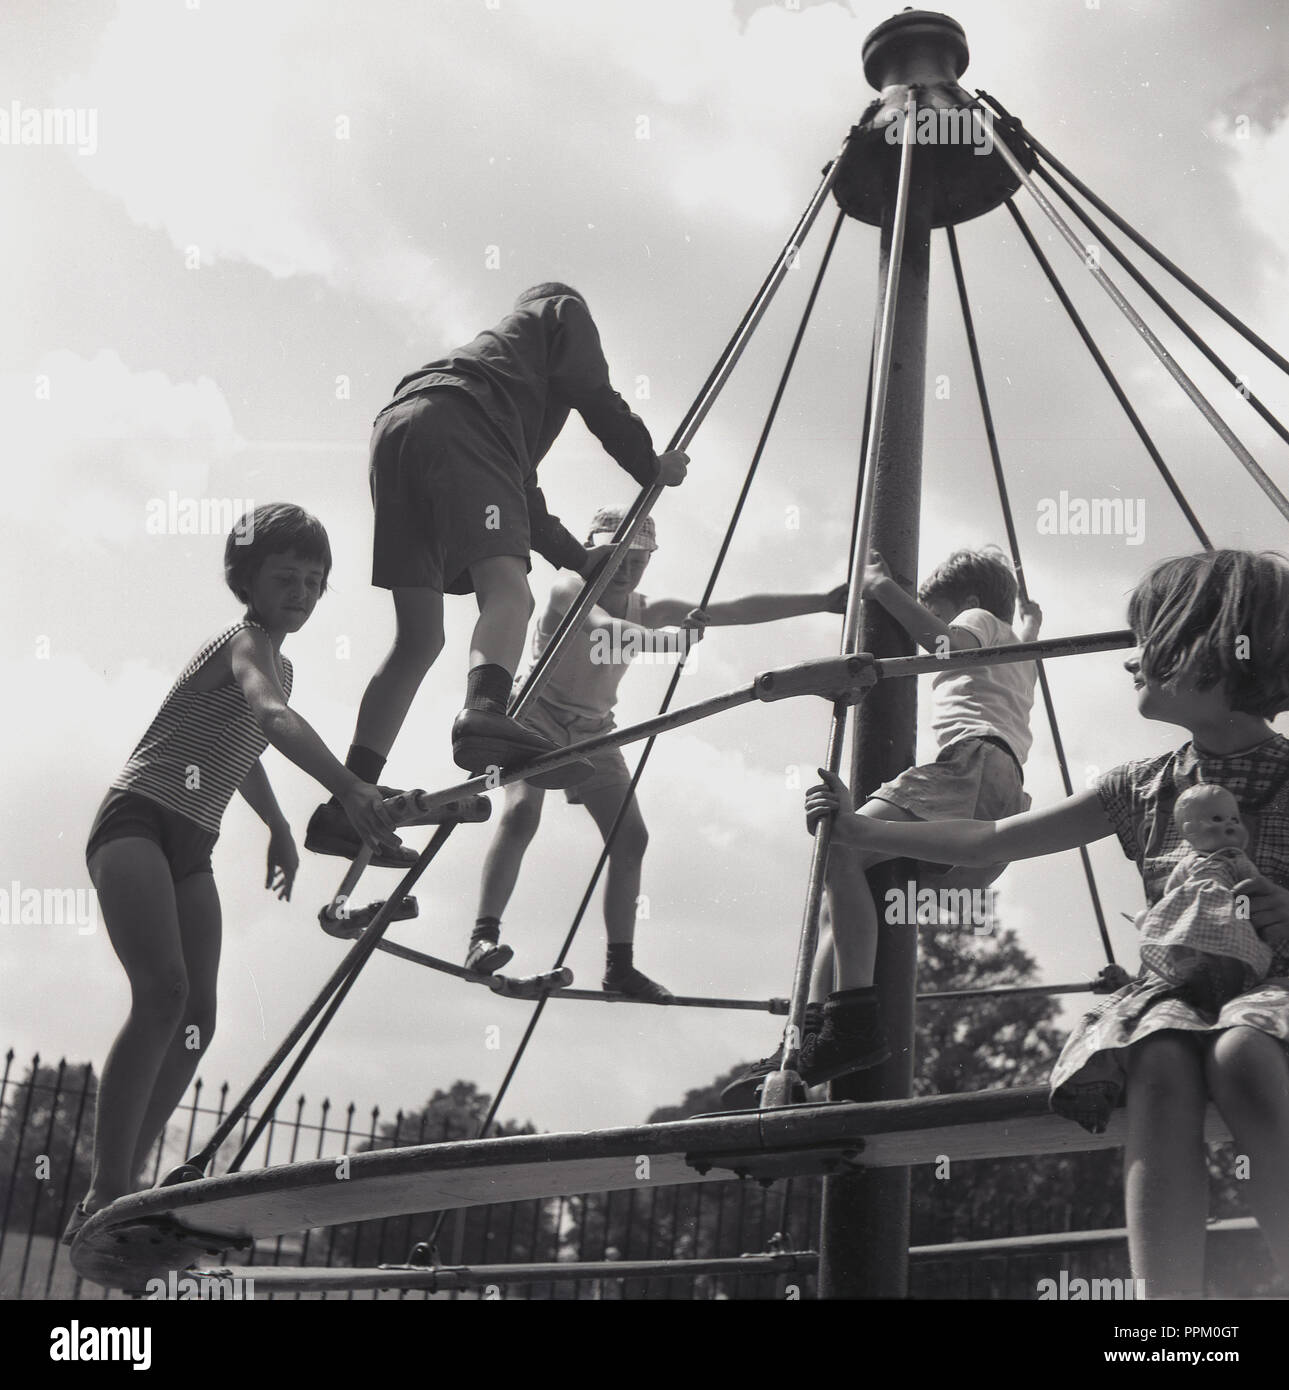 1960s, historical, young chidlren outside at a playground hanging onto the crossbars on an exciting metal swing or merry-go-round ride, known as the 'witches hat', England, UK. In the later decade, they were removed from playgrounds due to health and safety concerns about children falling off them. - Stock Image